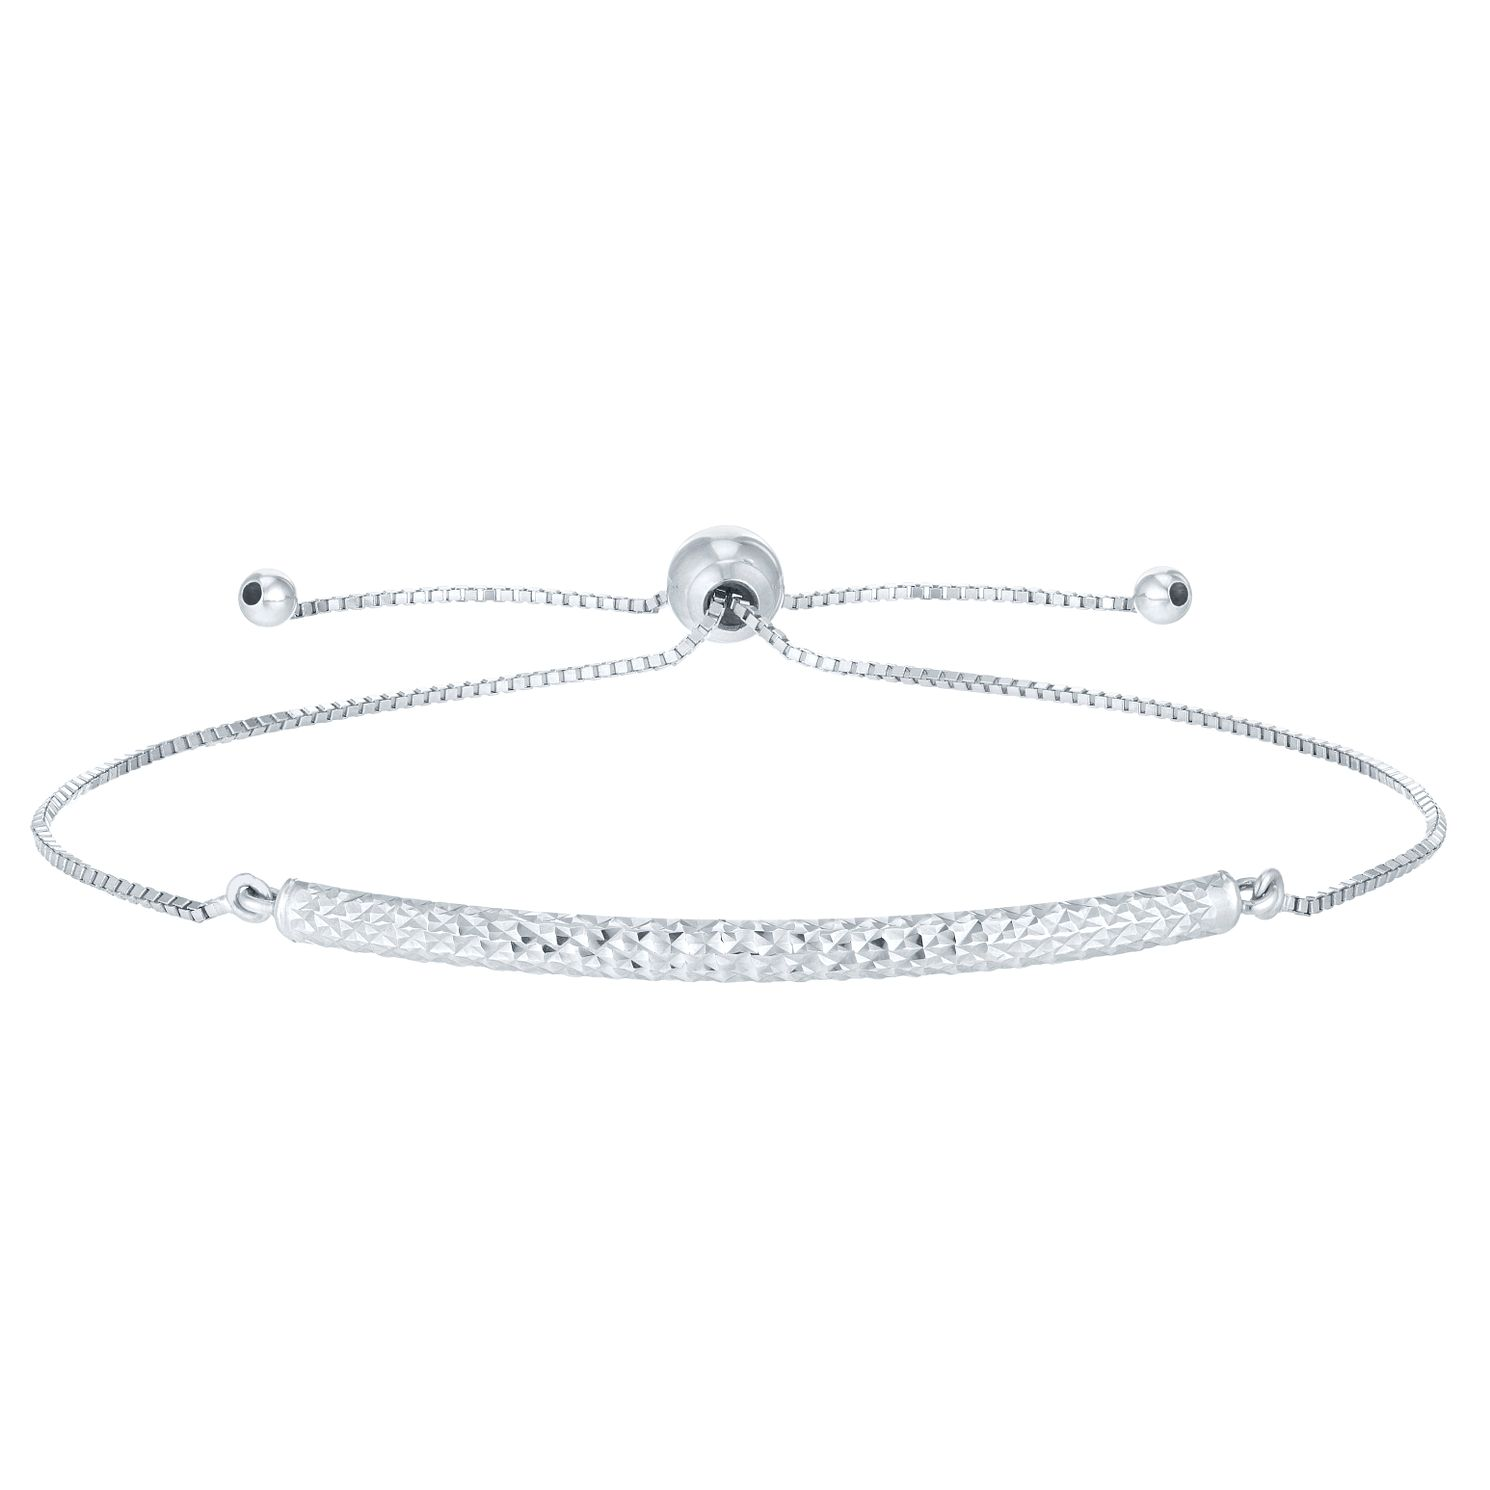 9ct White Gold Patterned Bracelet - Product number 6383335